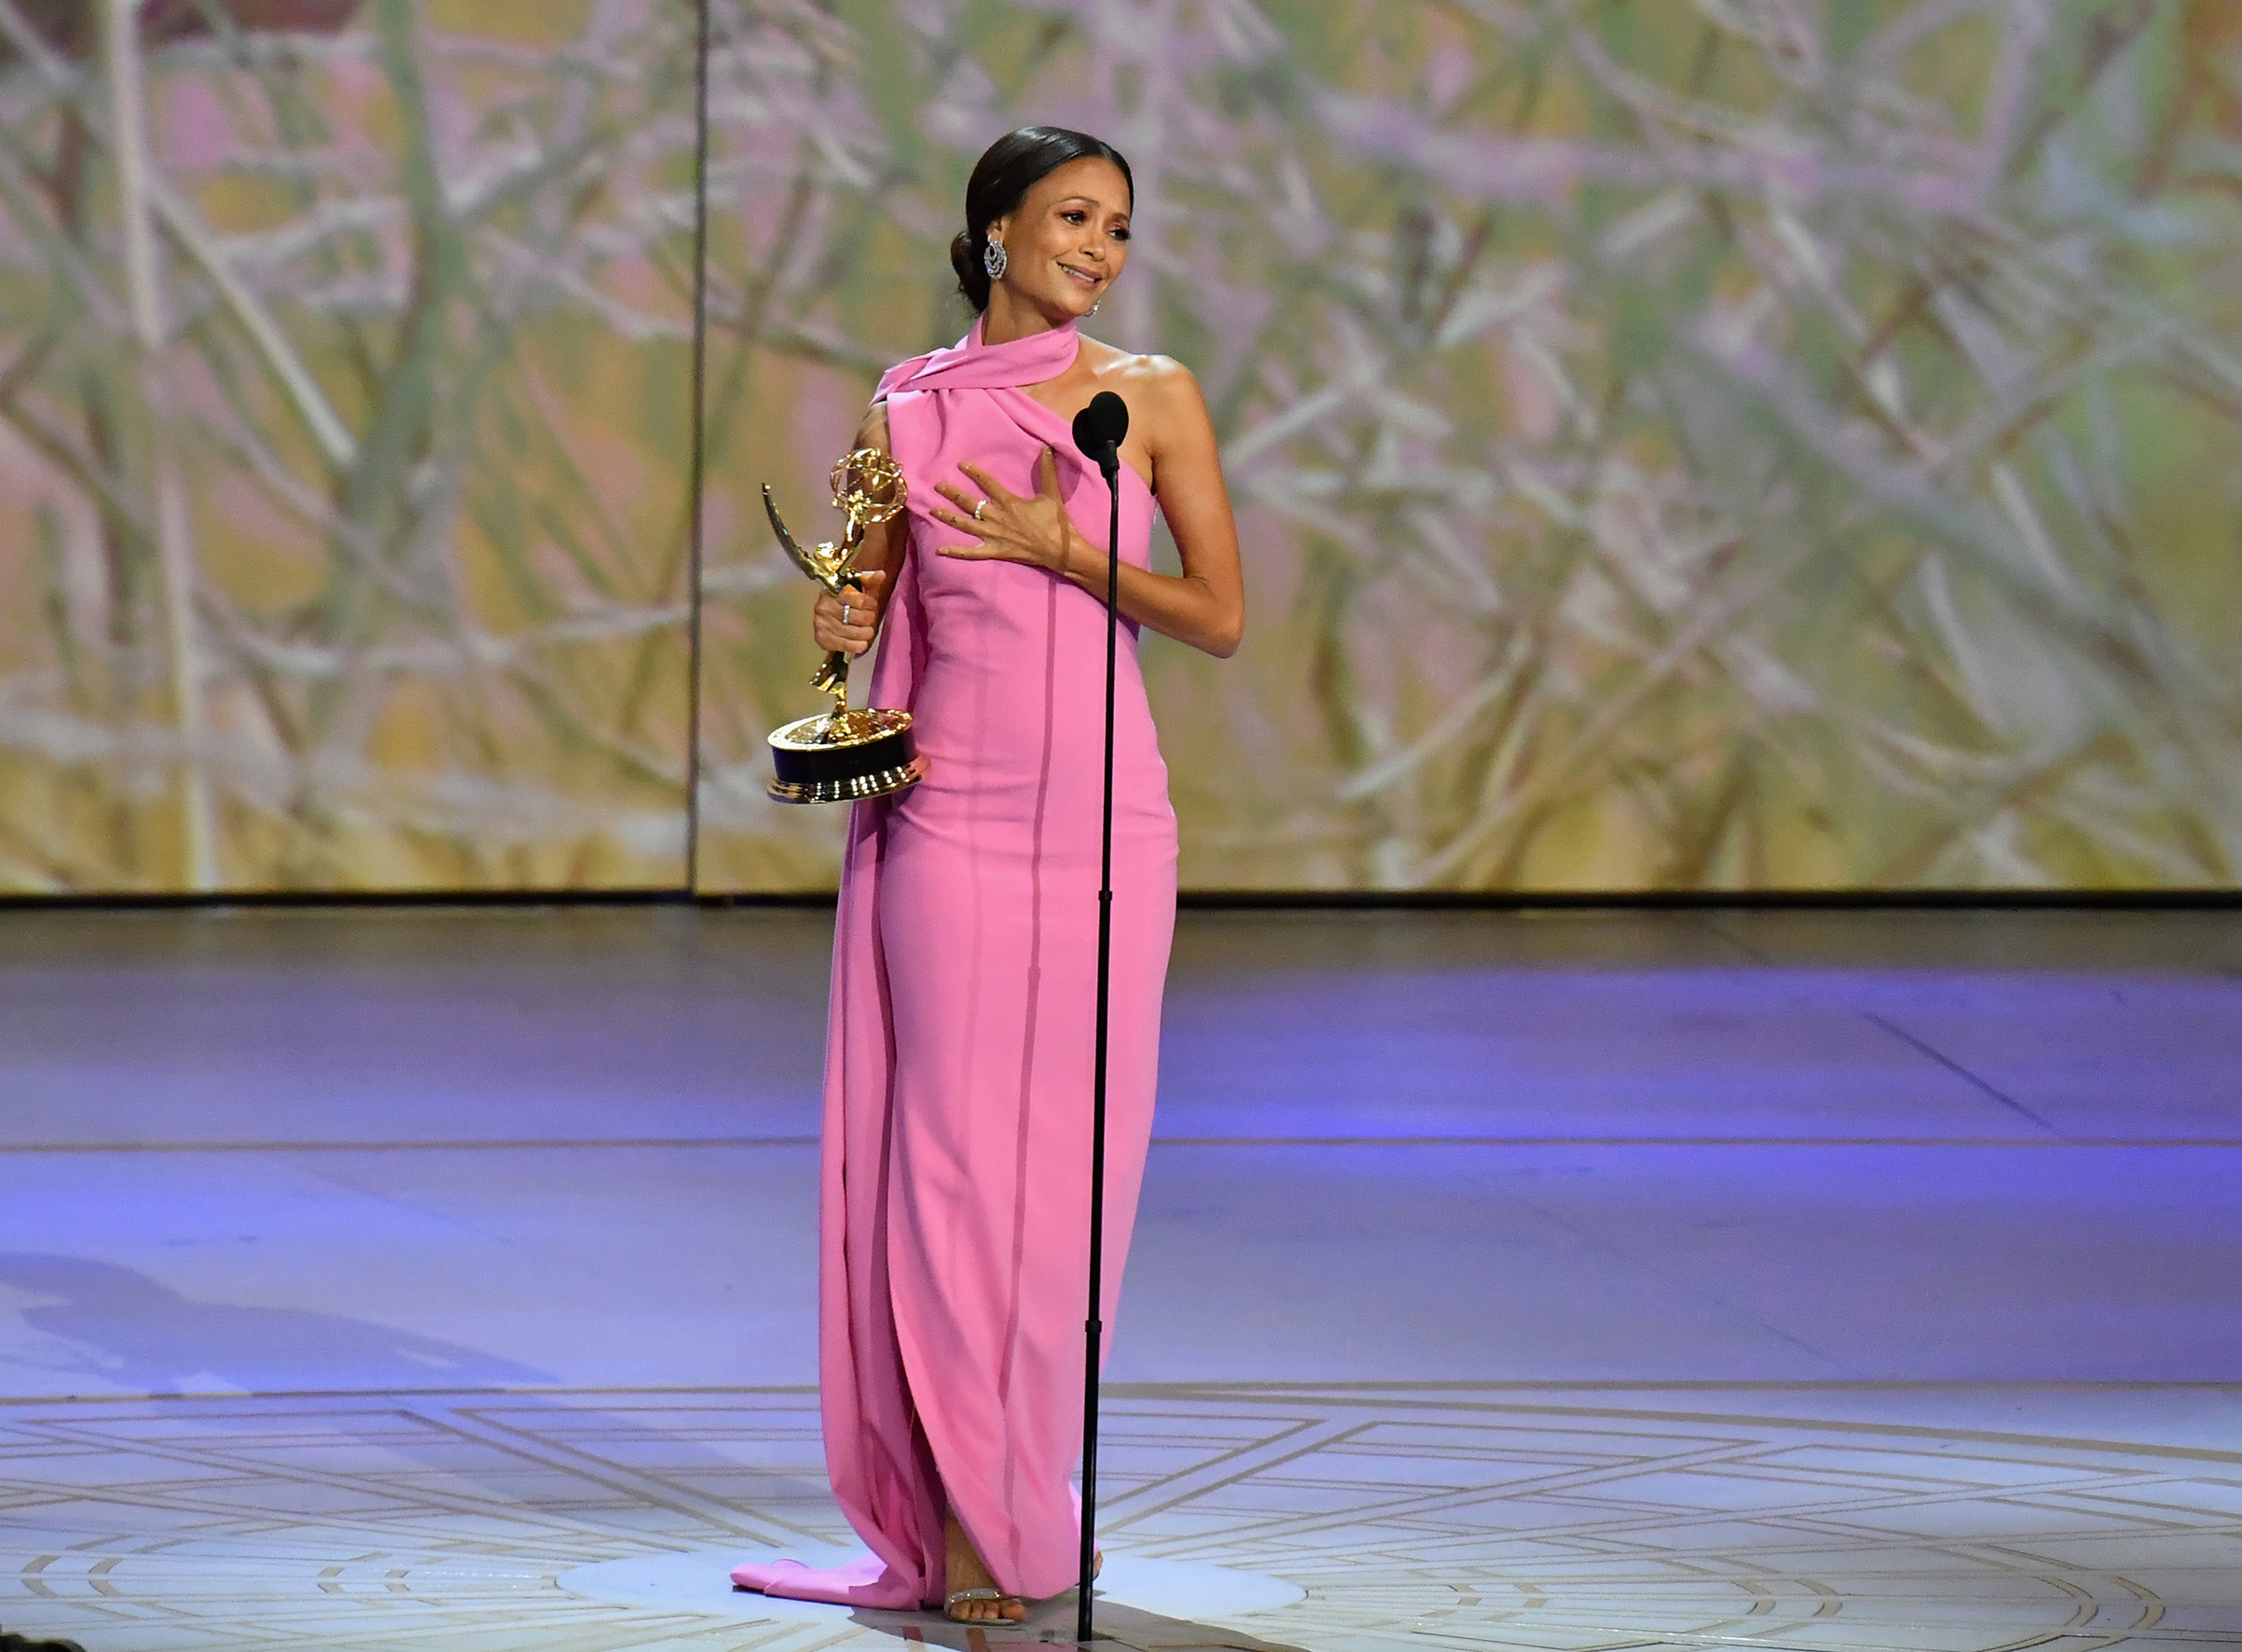 Thandie Newton accepts the award for Outstanding Supporting Actress in a Drama Series 'Westworld' onstage during the 70th Emmy Awards at Microsoft Theater on Sept. 17, 2018 in Los Angeles.